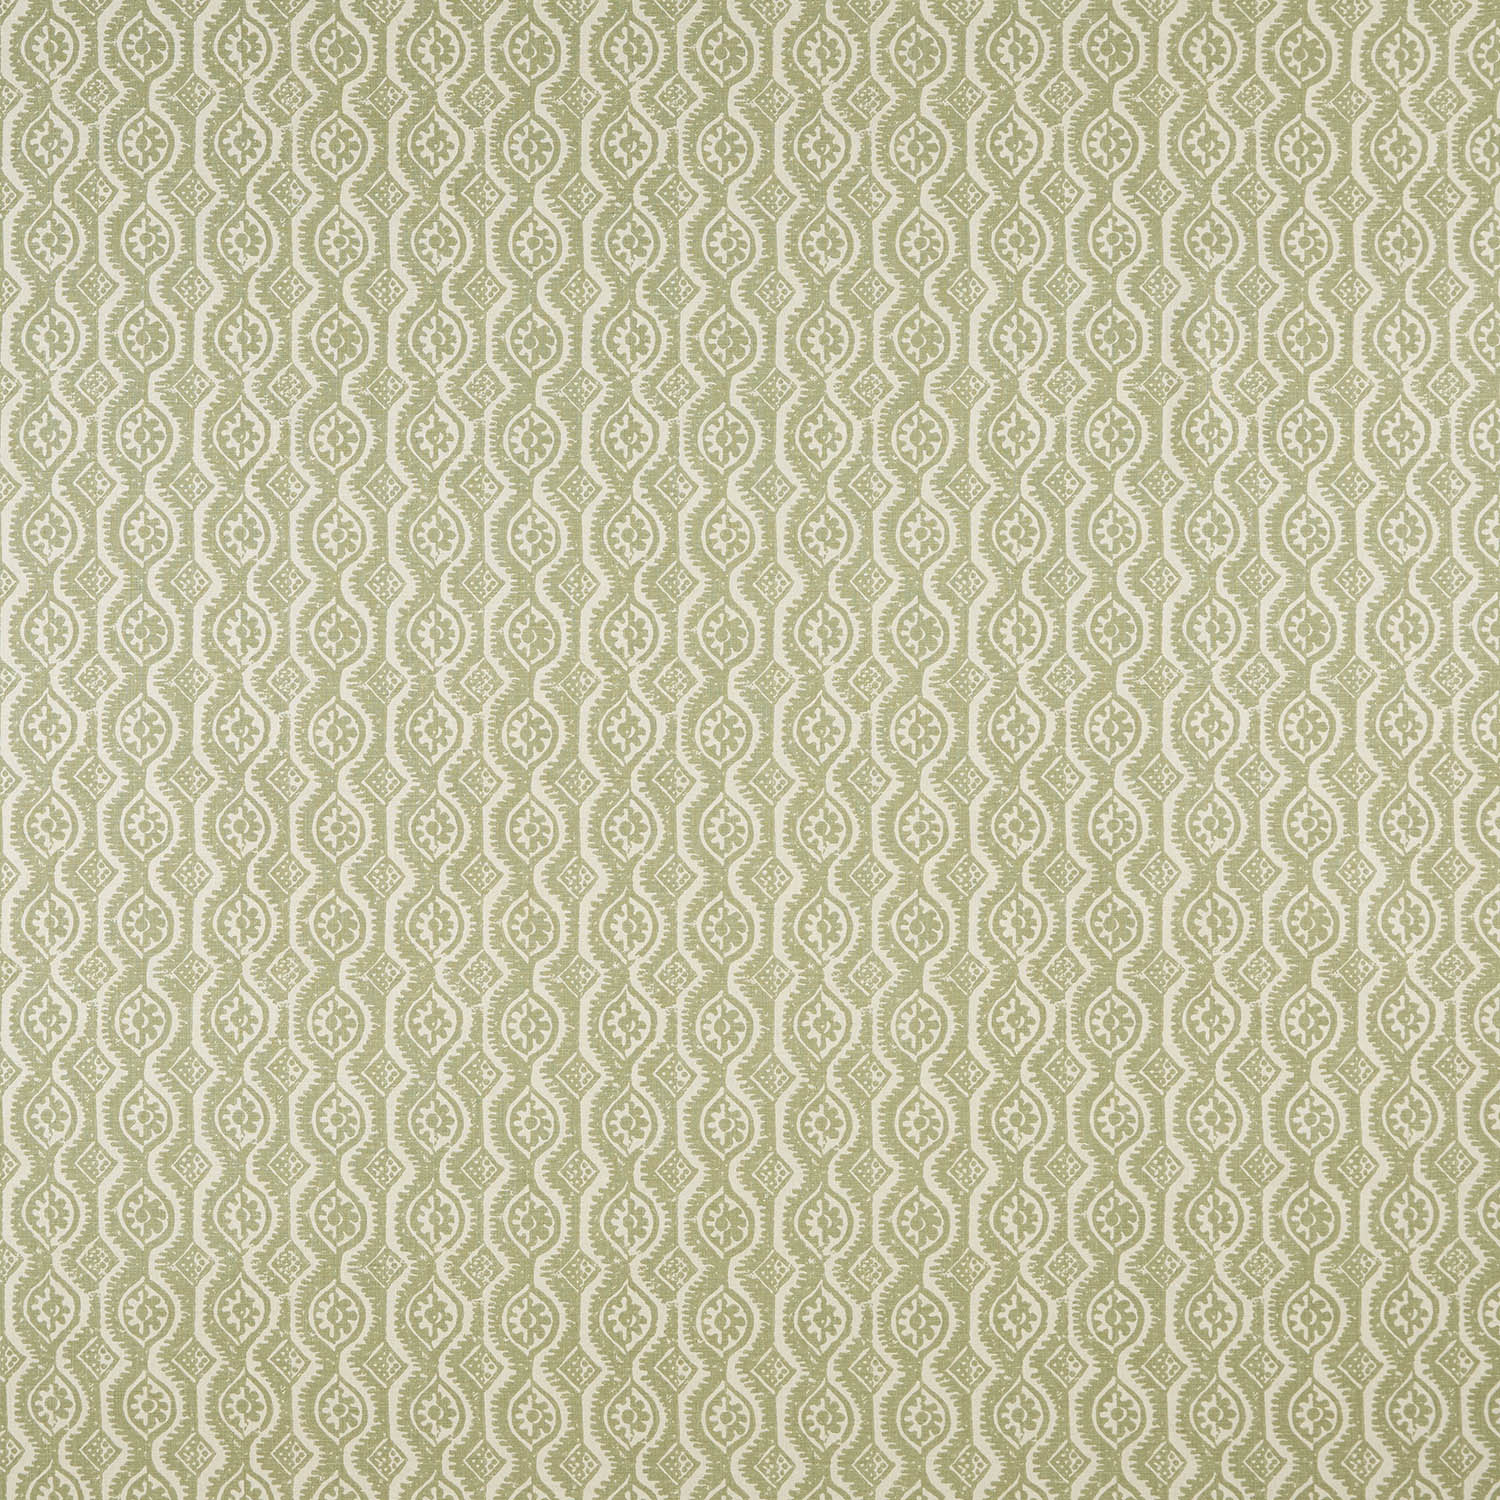 <p><strong>SMALL DAMASK</strong>green/natural 2900-10<a href=/the-somerton-collection/small-damask-green-natural-2900-10>More →</a></p>